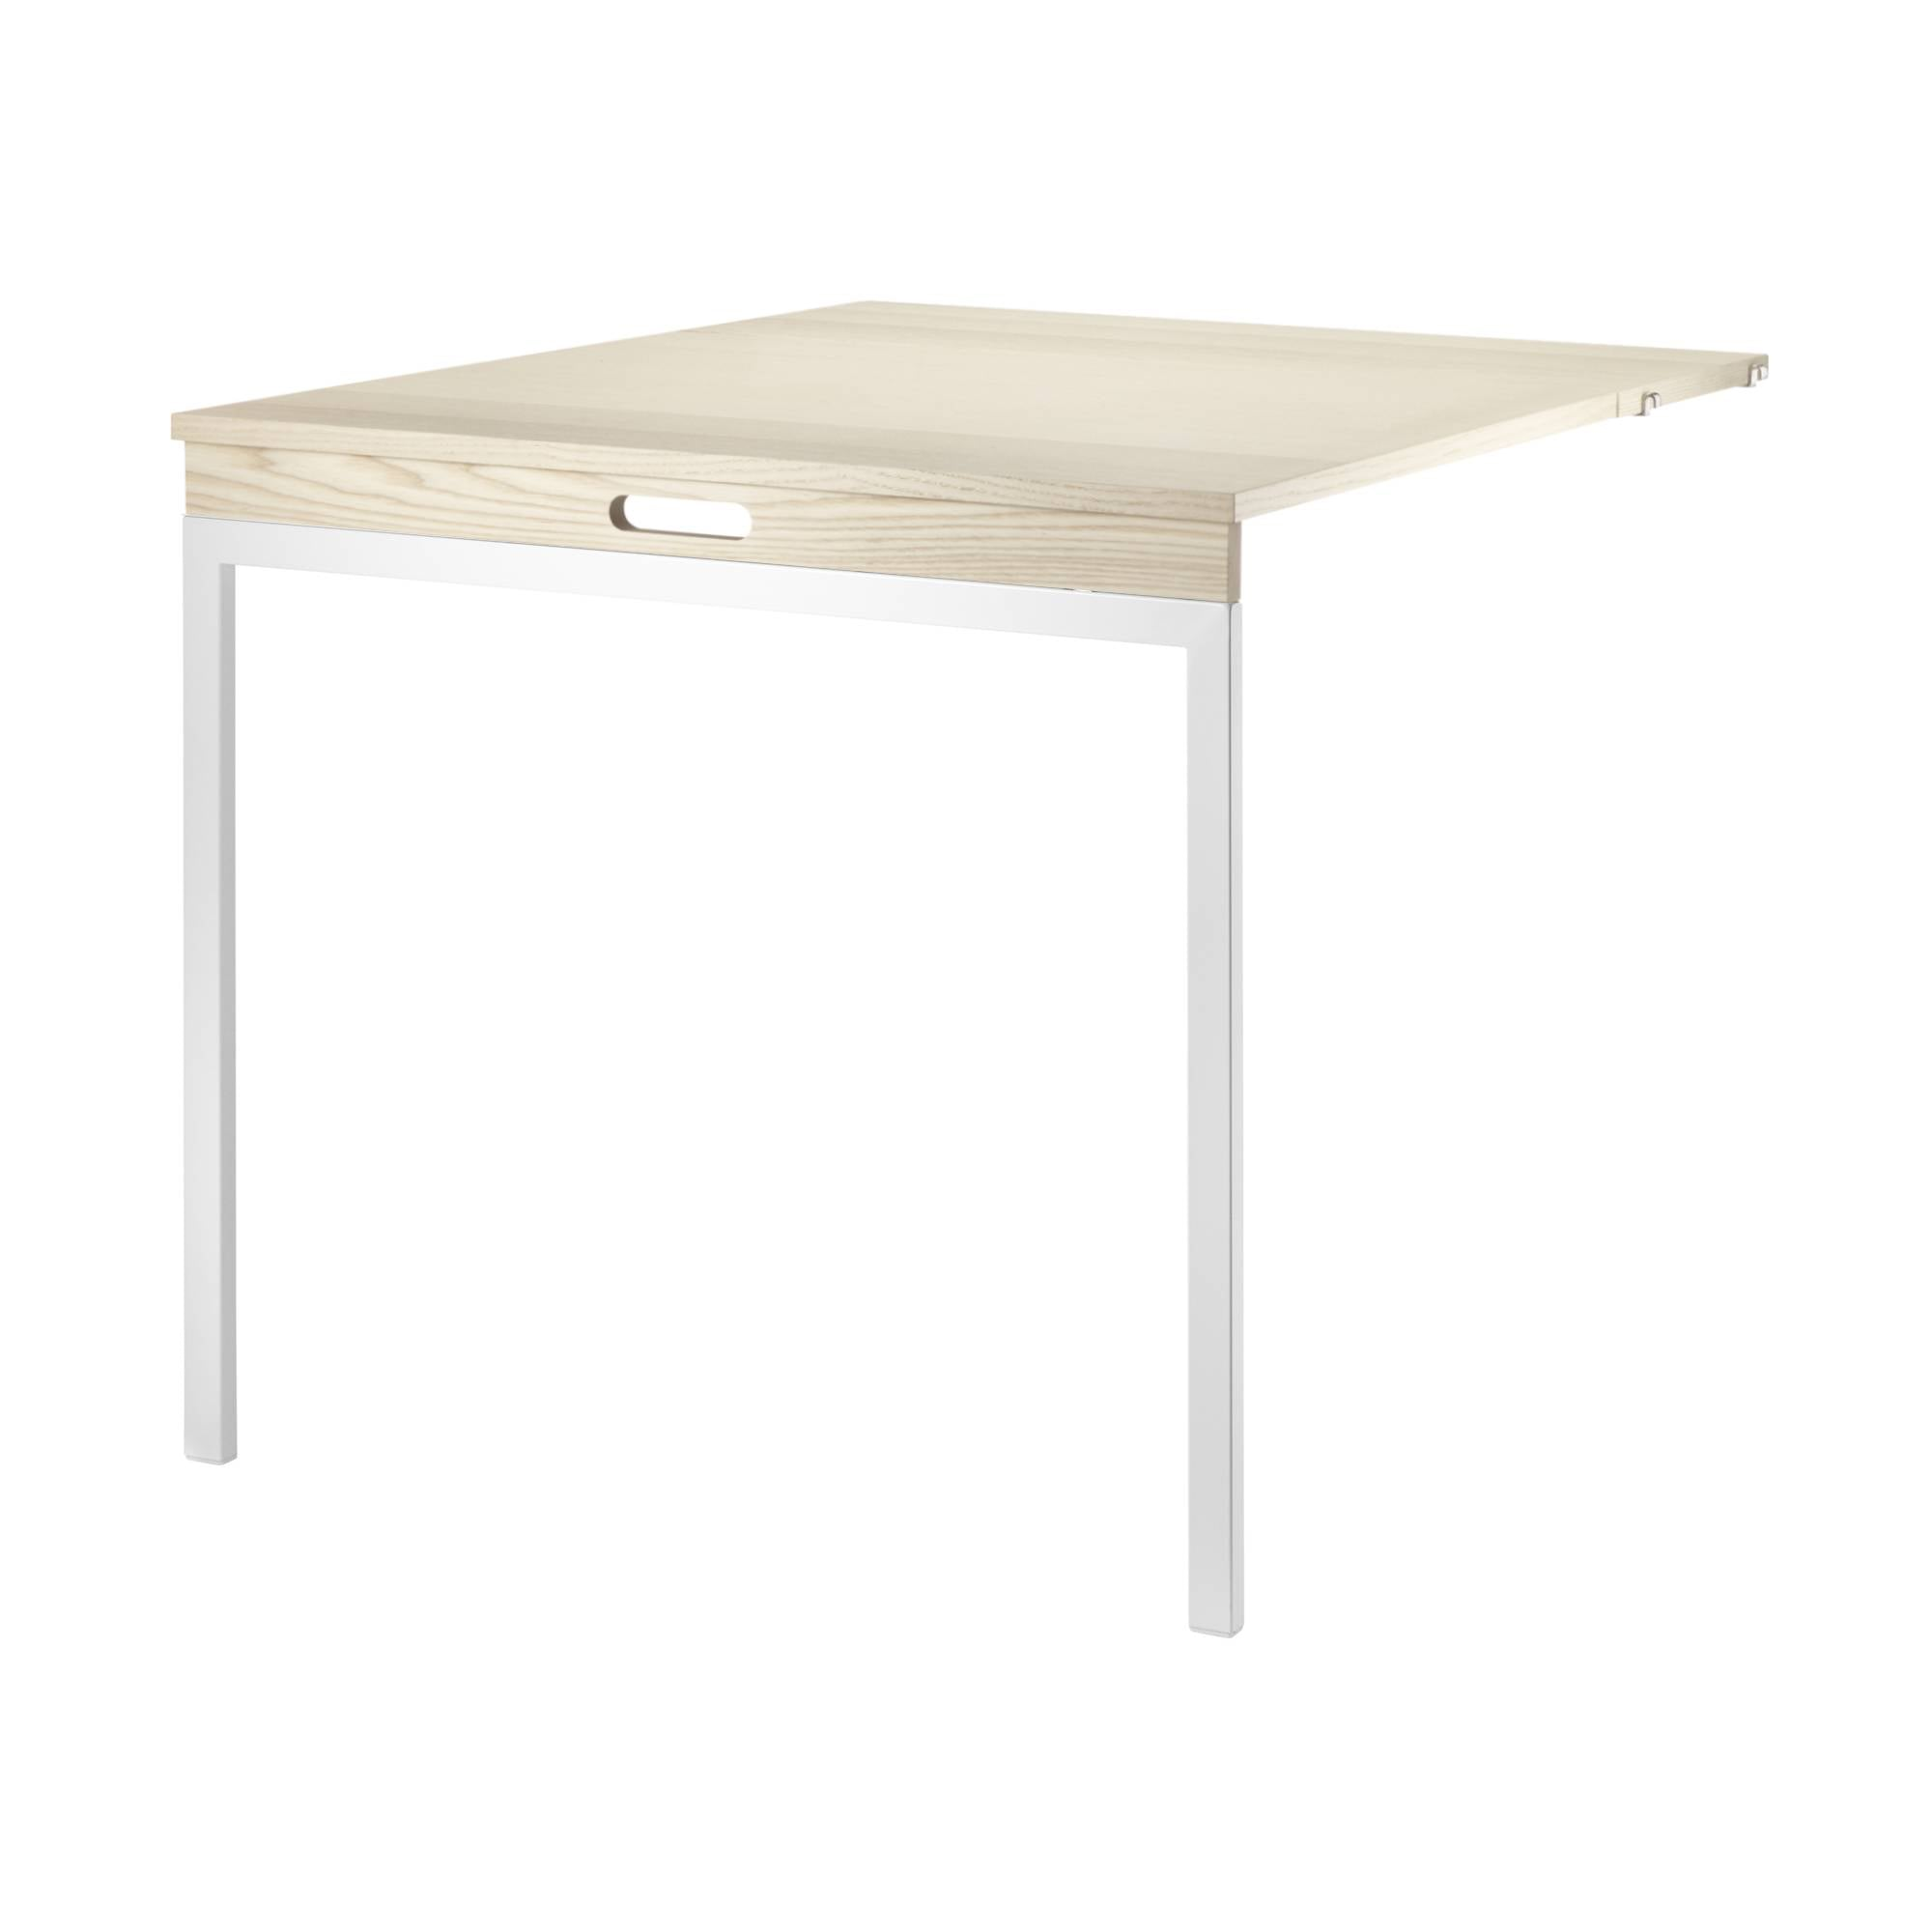 String Shelving System Folding Table: Ash + White Legs